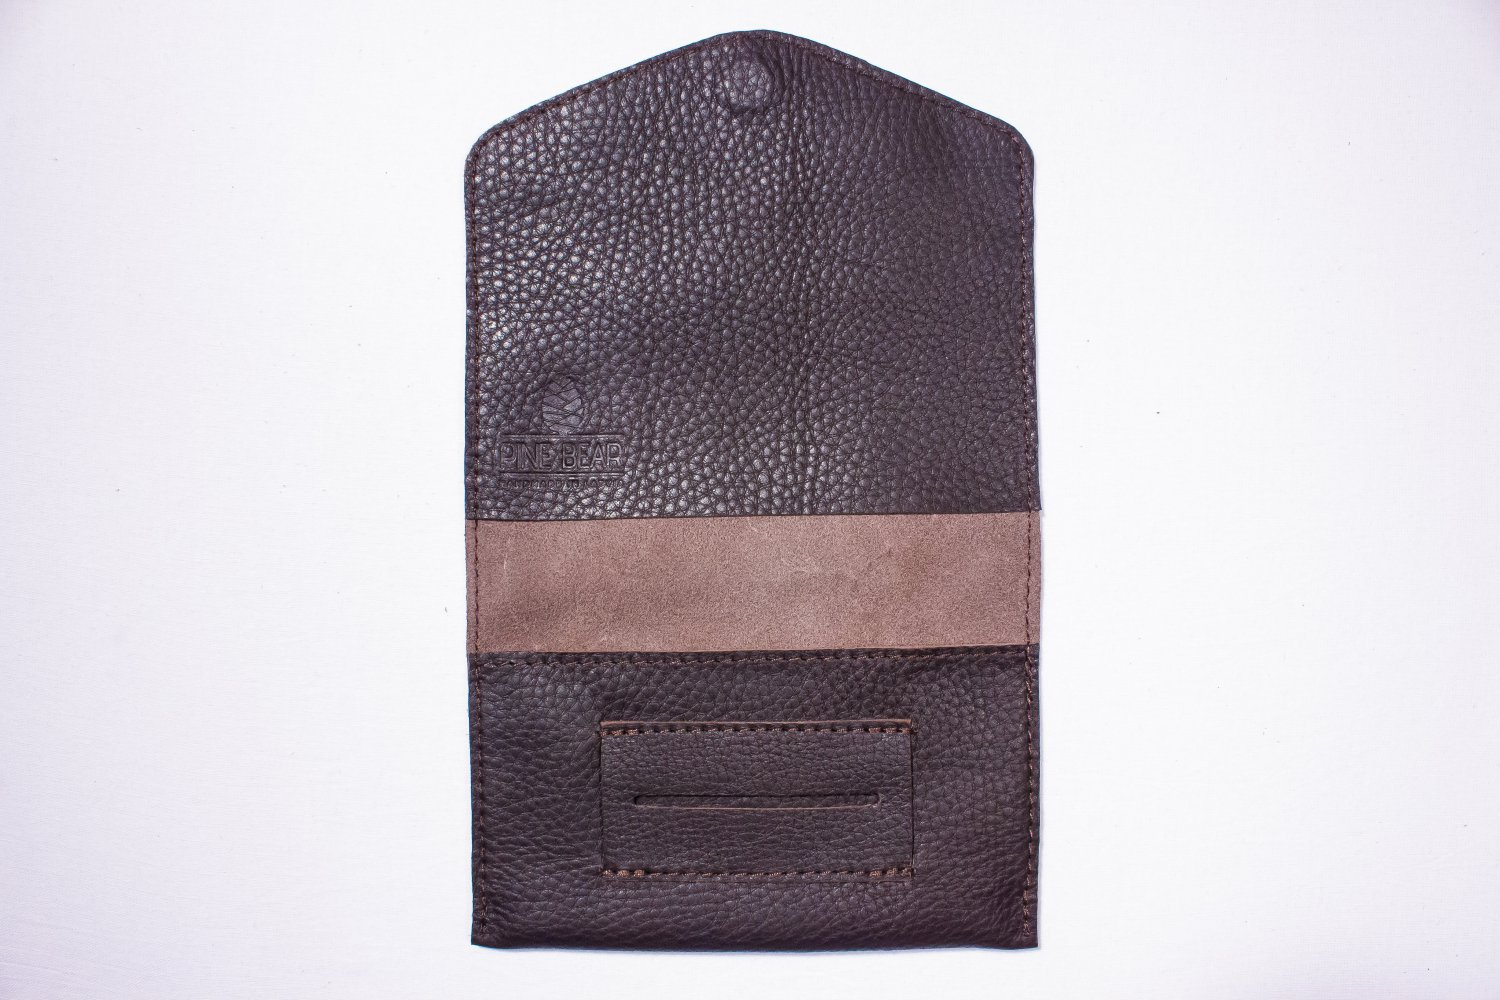 Black tobacco pouch Leather tobacco wallet